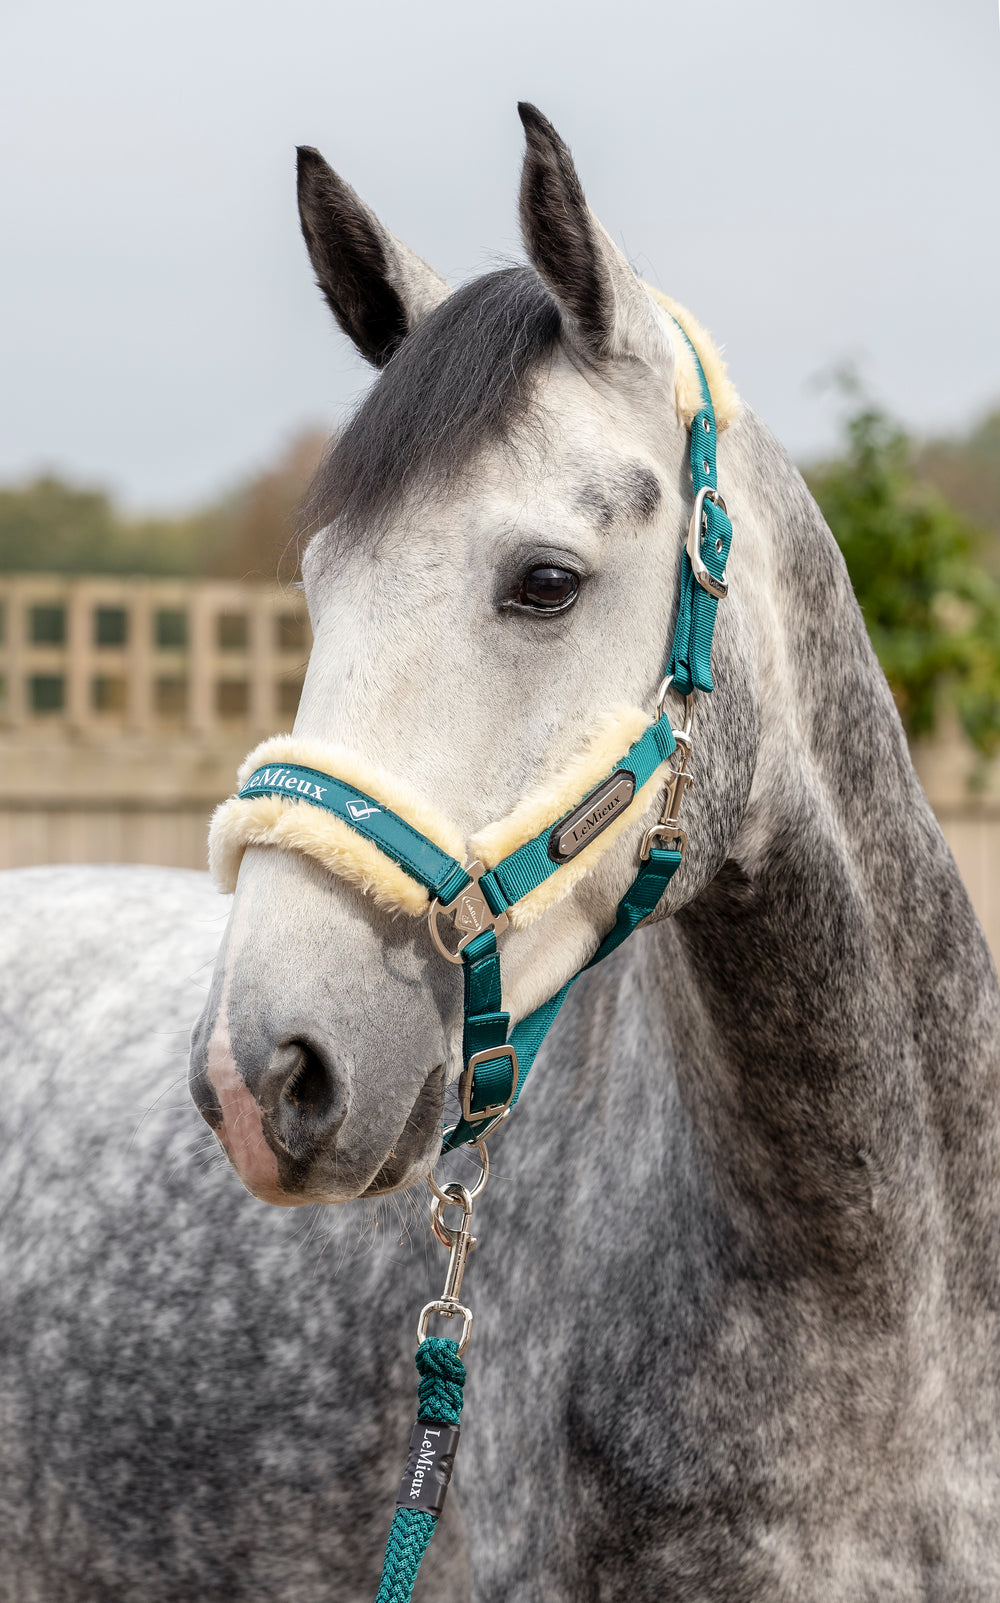 LeMieux Loire Luxury Padded Headcollar & Leadrope - Peacock